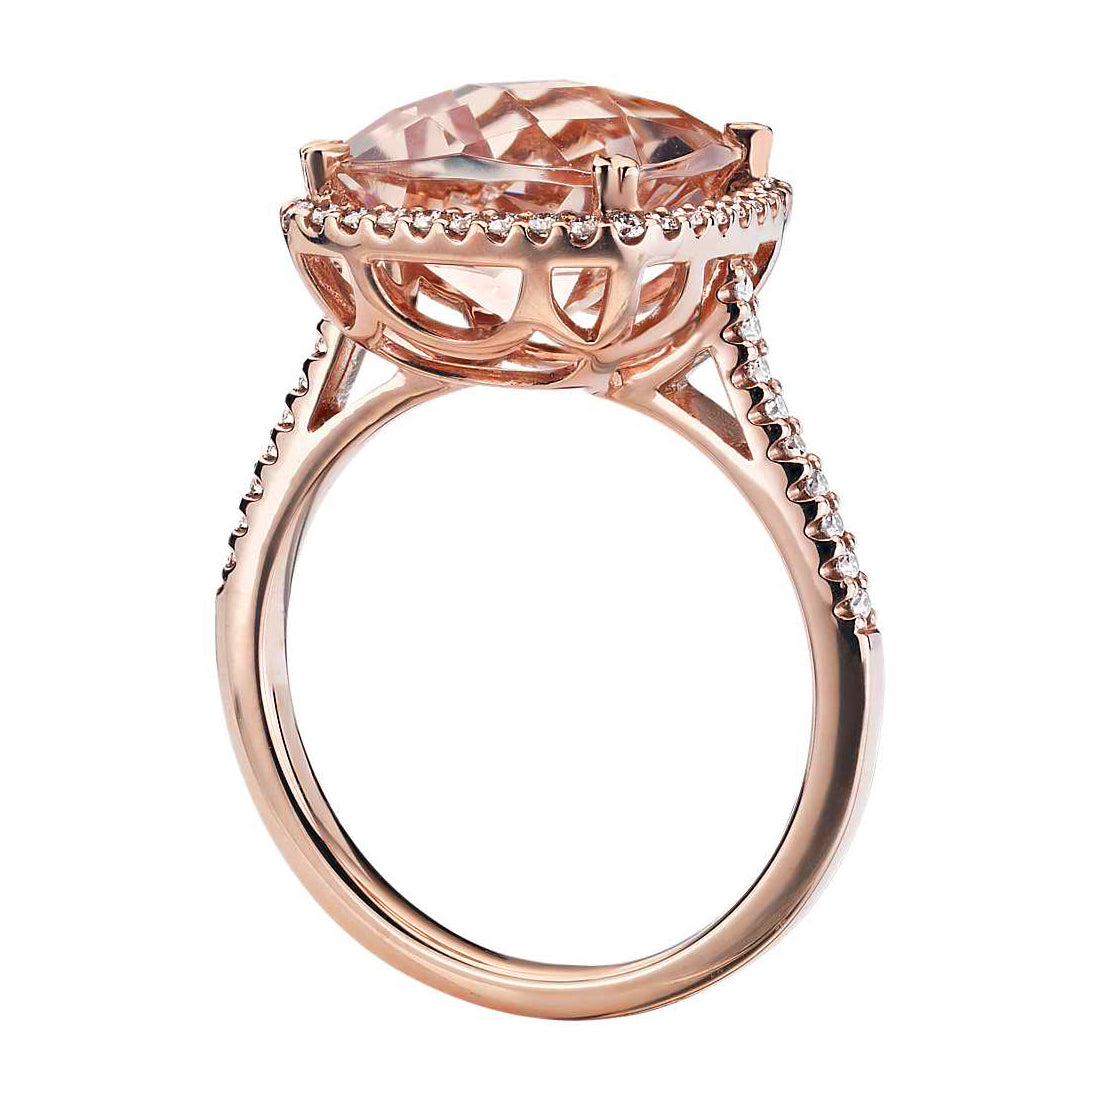 Cushion cut morganite ring with diamonds - 2